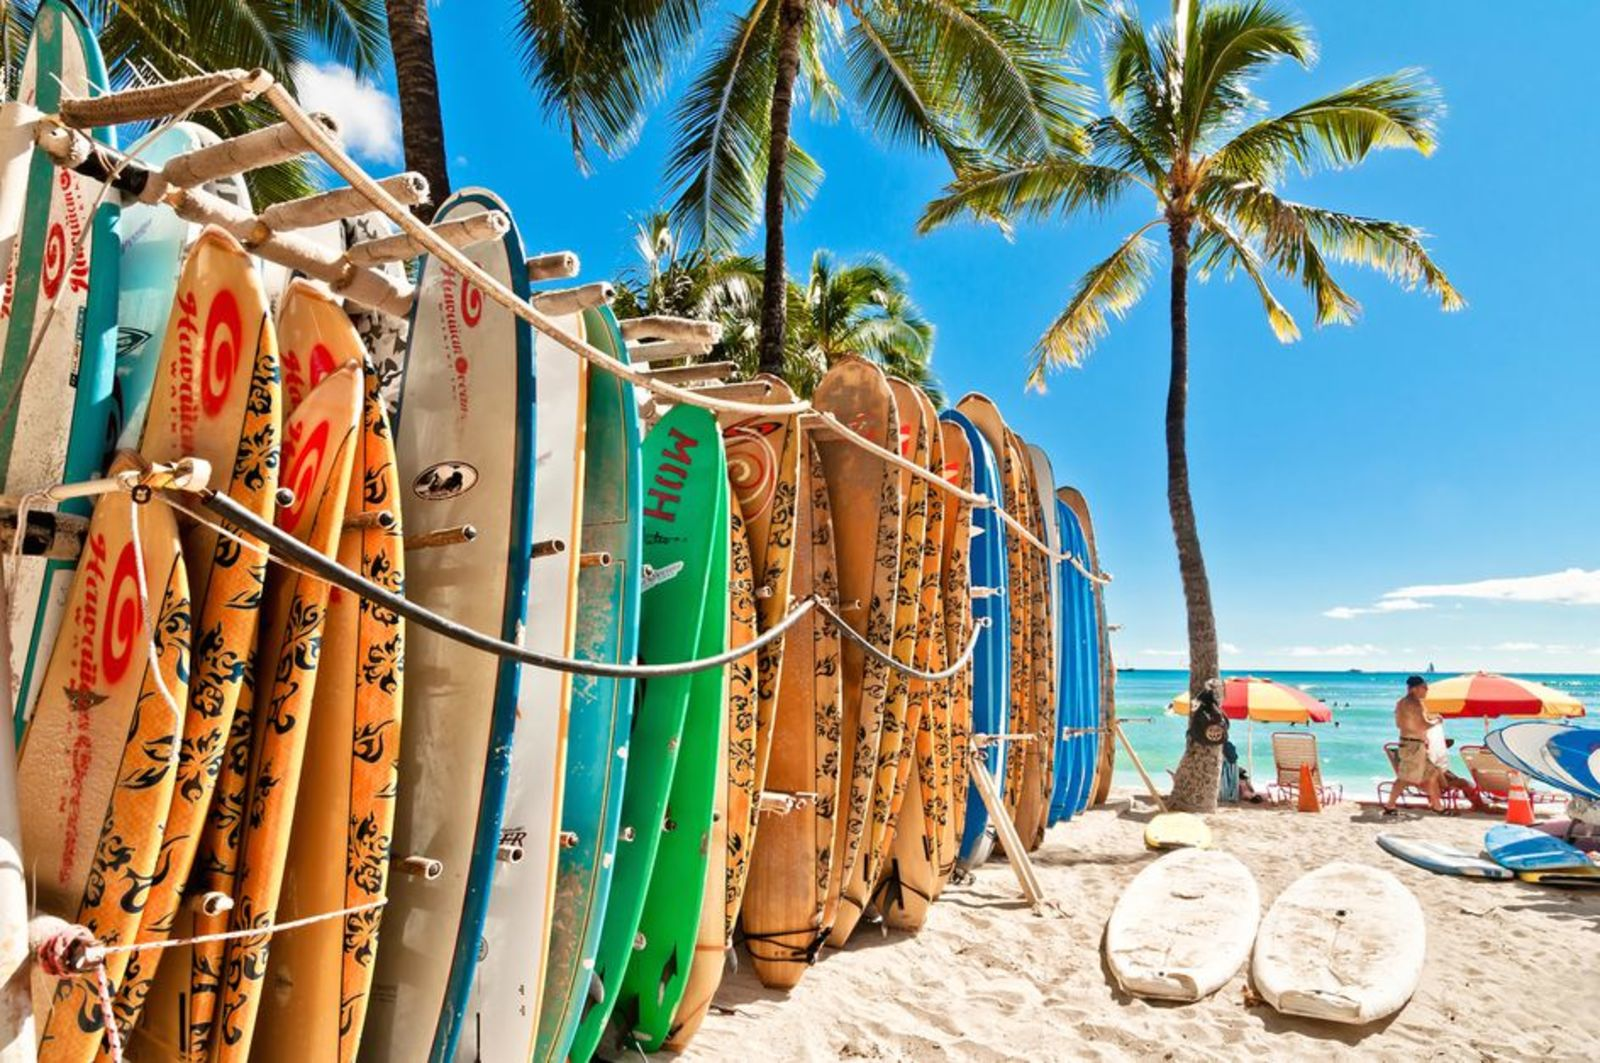 Surfplanken op het strand in Hawaii